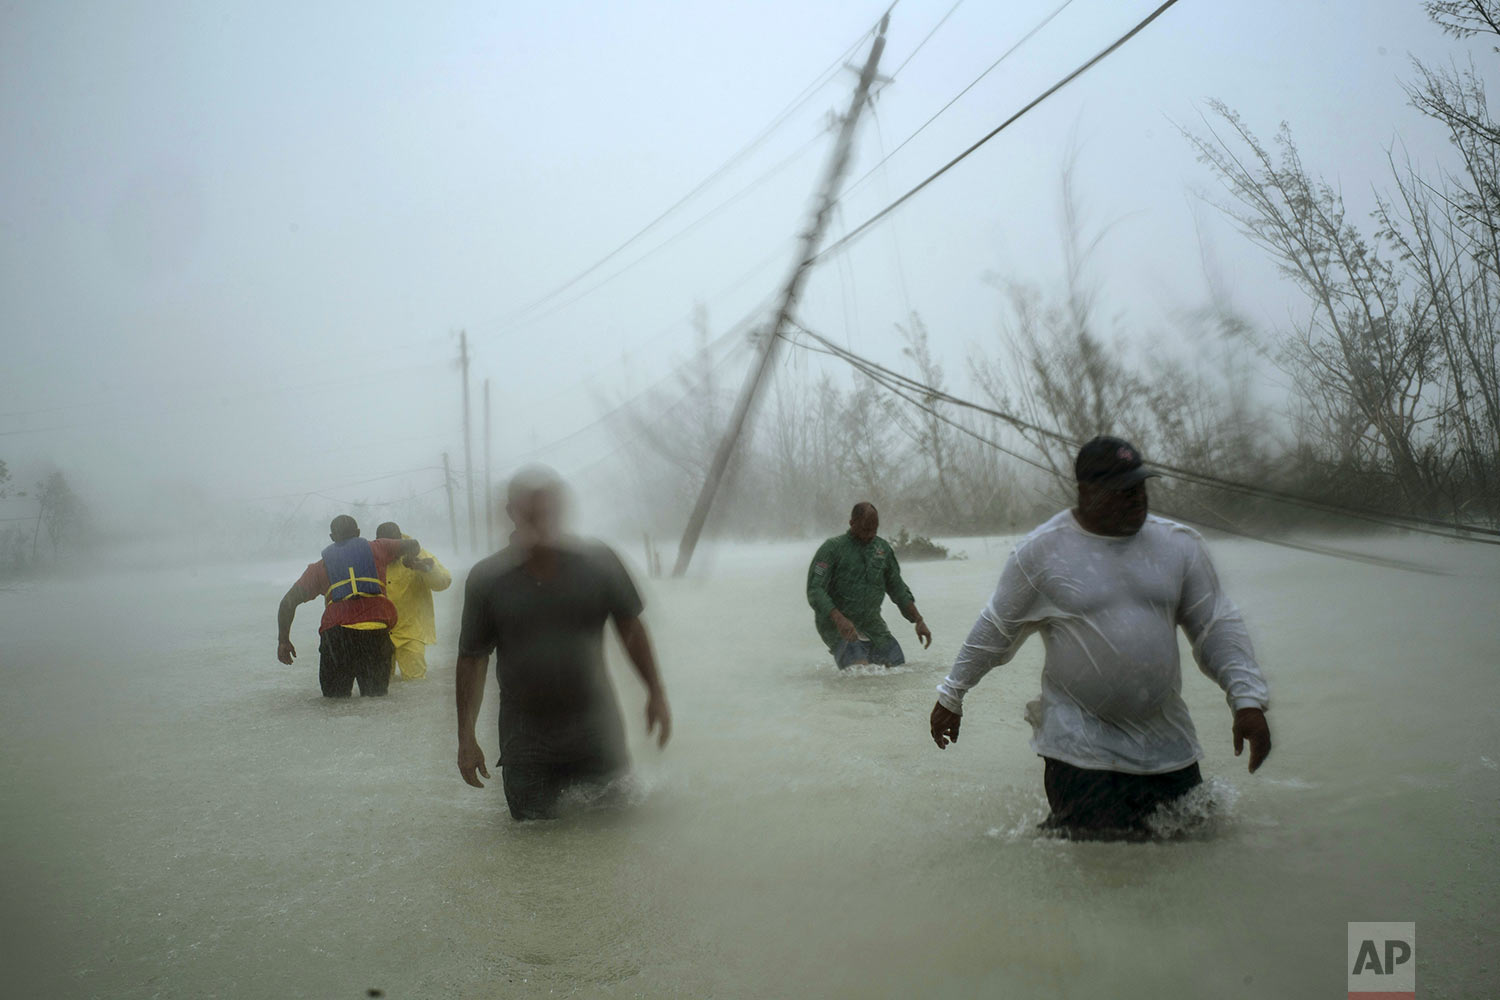 Volunteers wade through a flooded road against wind and rain caused by Hurricane Dorian to rescue families near the Causarina bridge in Freeport, Grand Bahama, Bahamas, Tuesday, Sept. 3, 2019. The storm's punishing winds and muddy brown floodwaters devastated thousands of homes, crippled hospitals and trapped people in attics. (AP Photo/Ramon Espinosa)